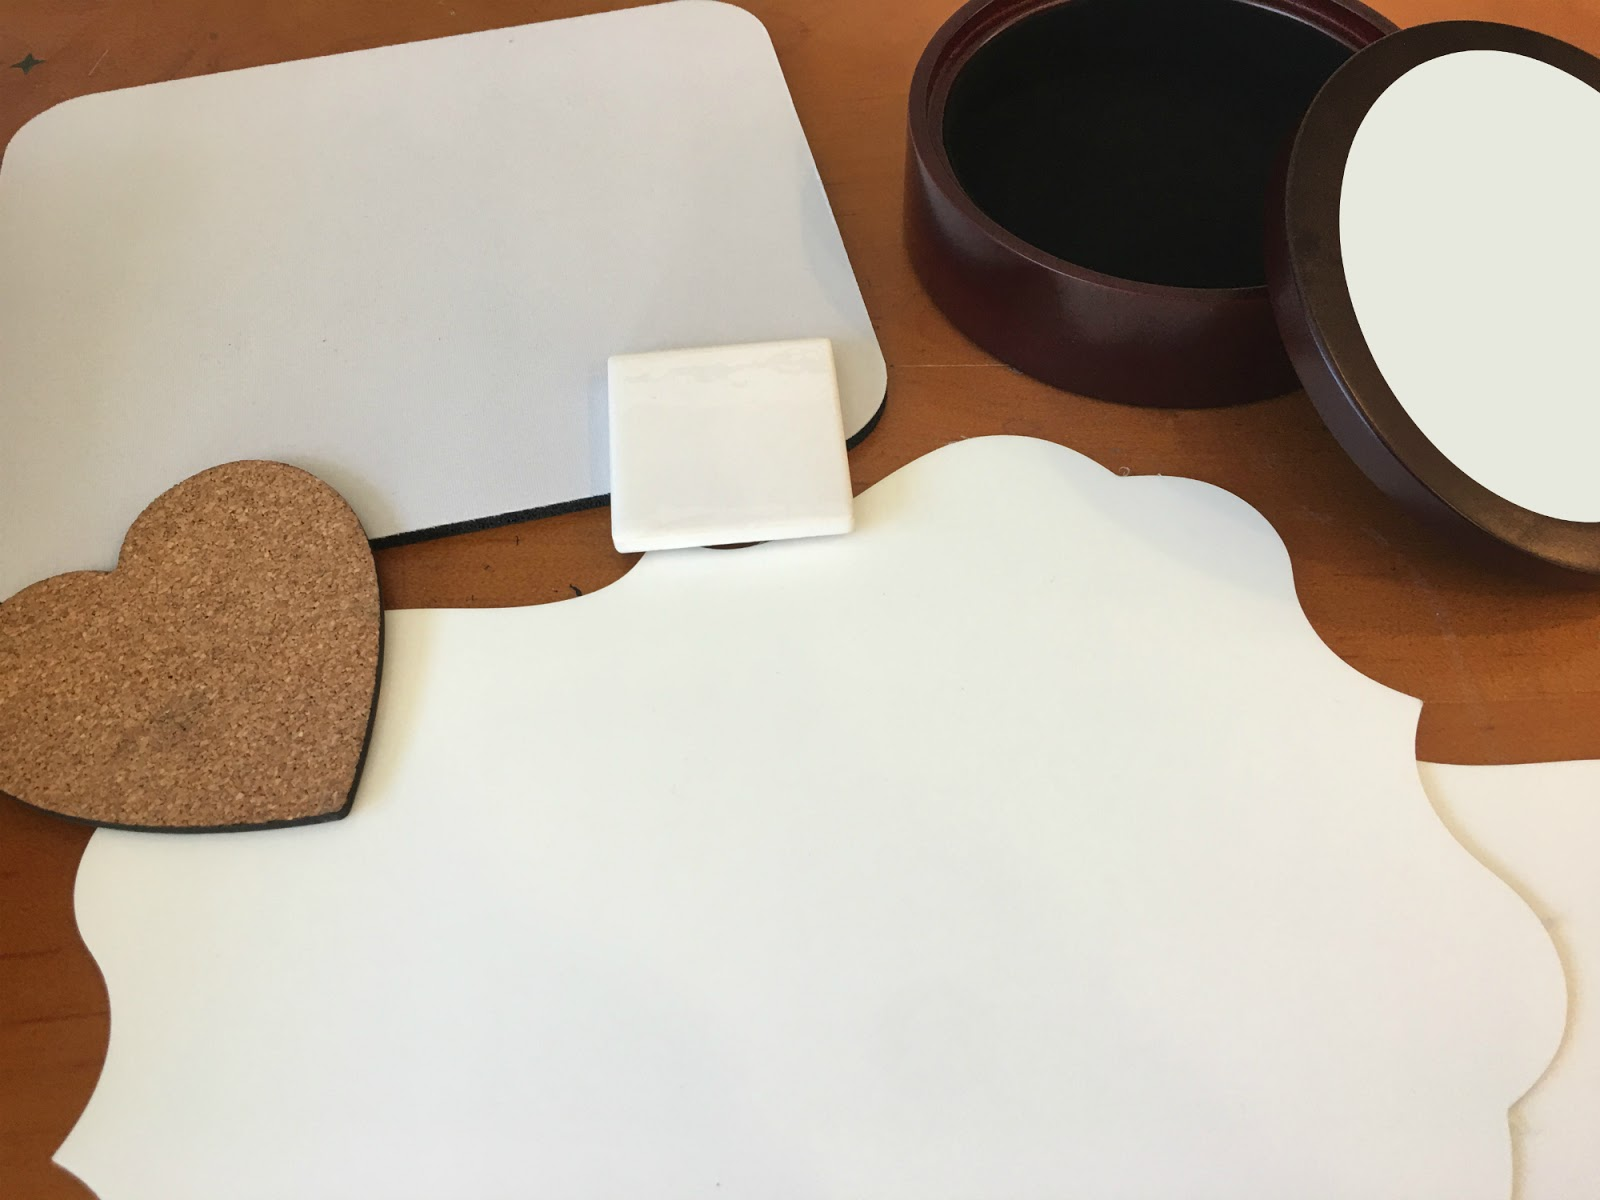 Heat Press Friendly Sublimation Blanks: Because Sublimation